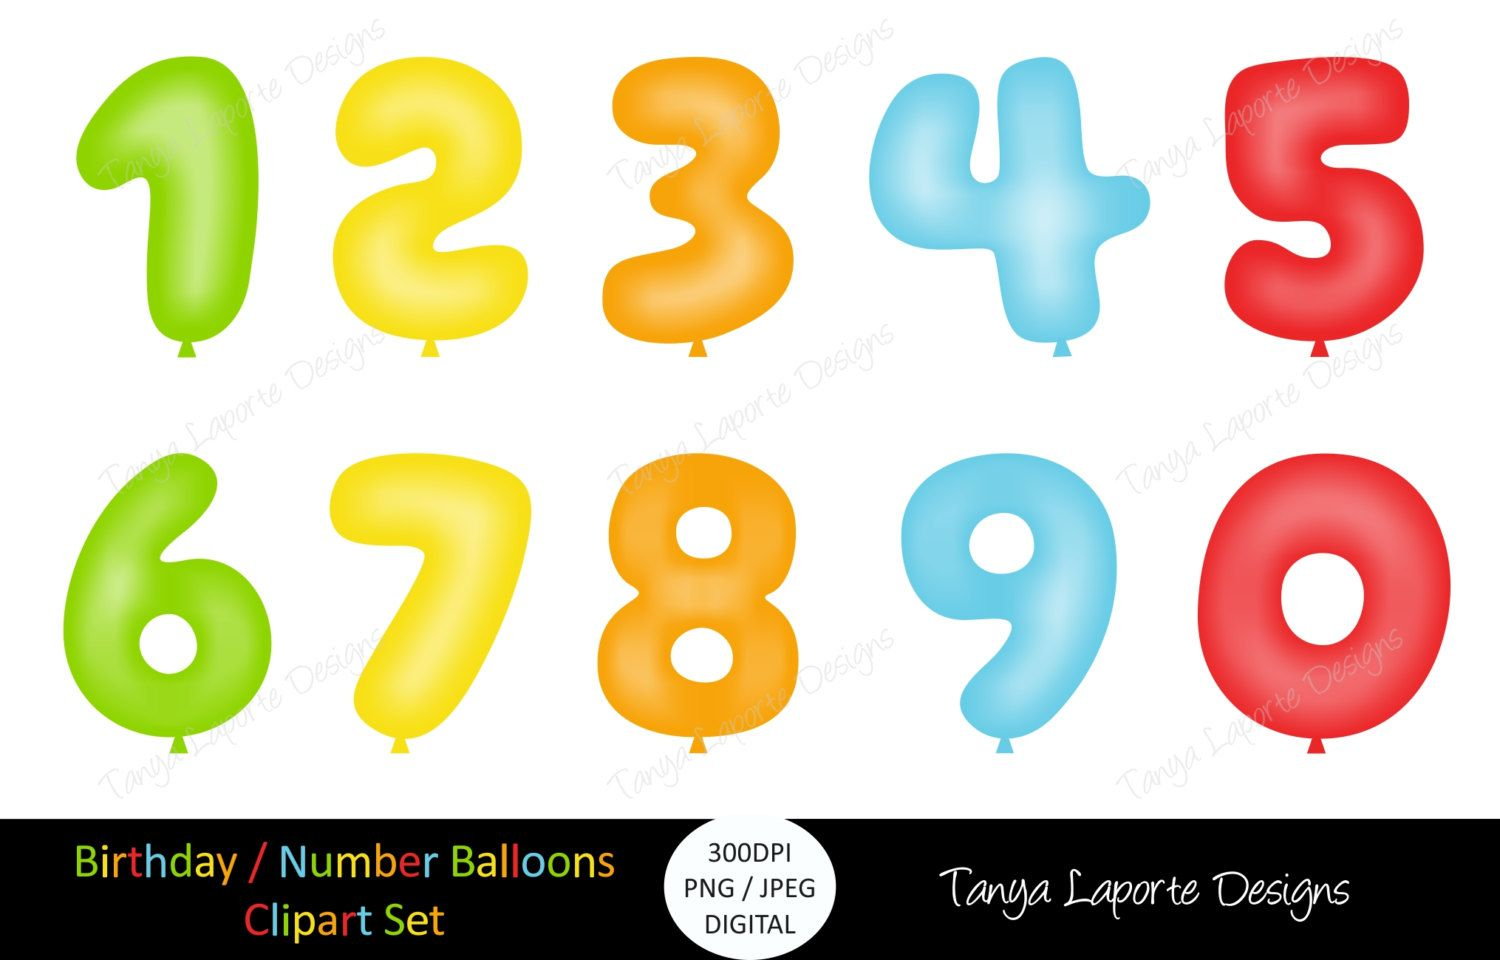 25+ Clipart number 10 ideas